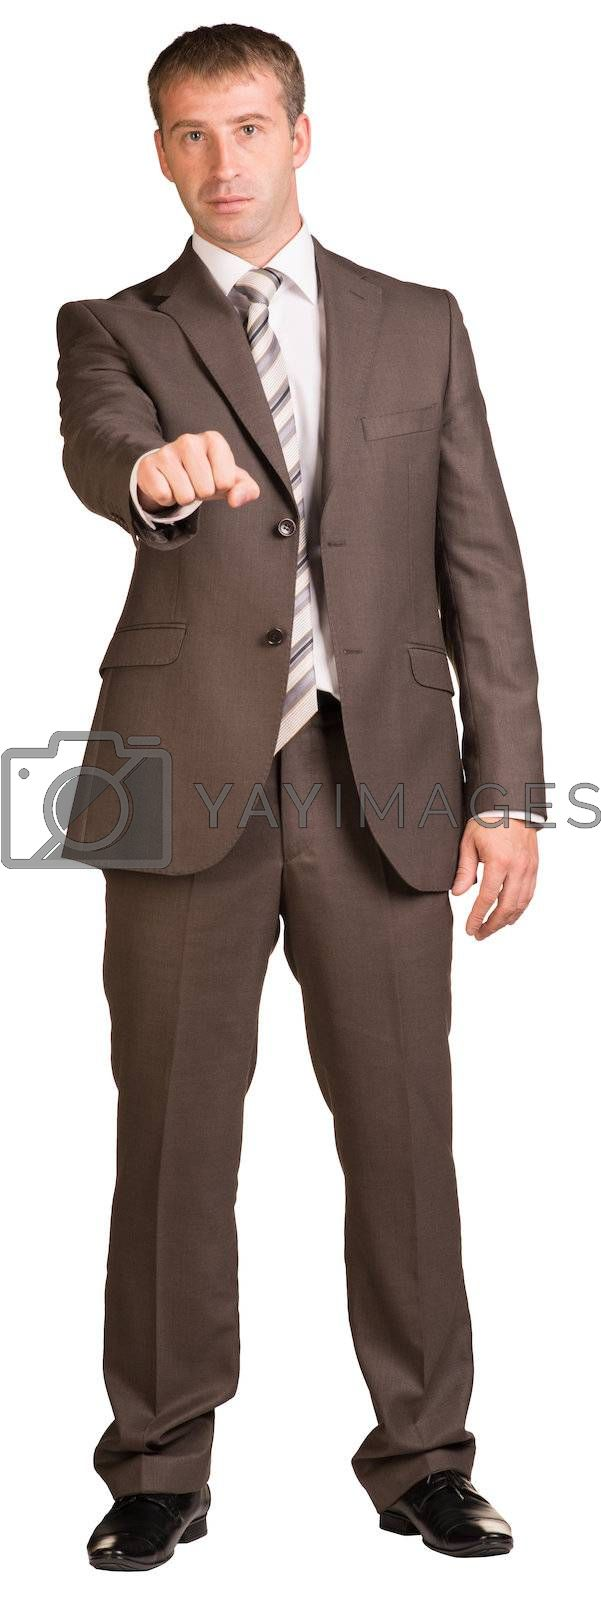 Fist businessman. Isolated on the white background